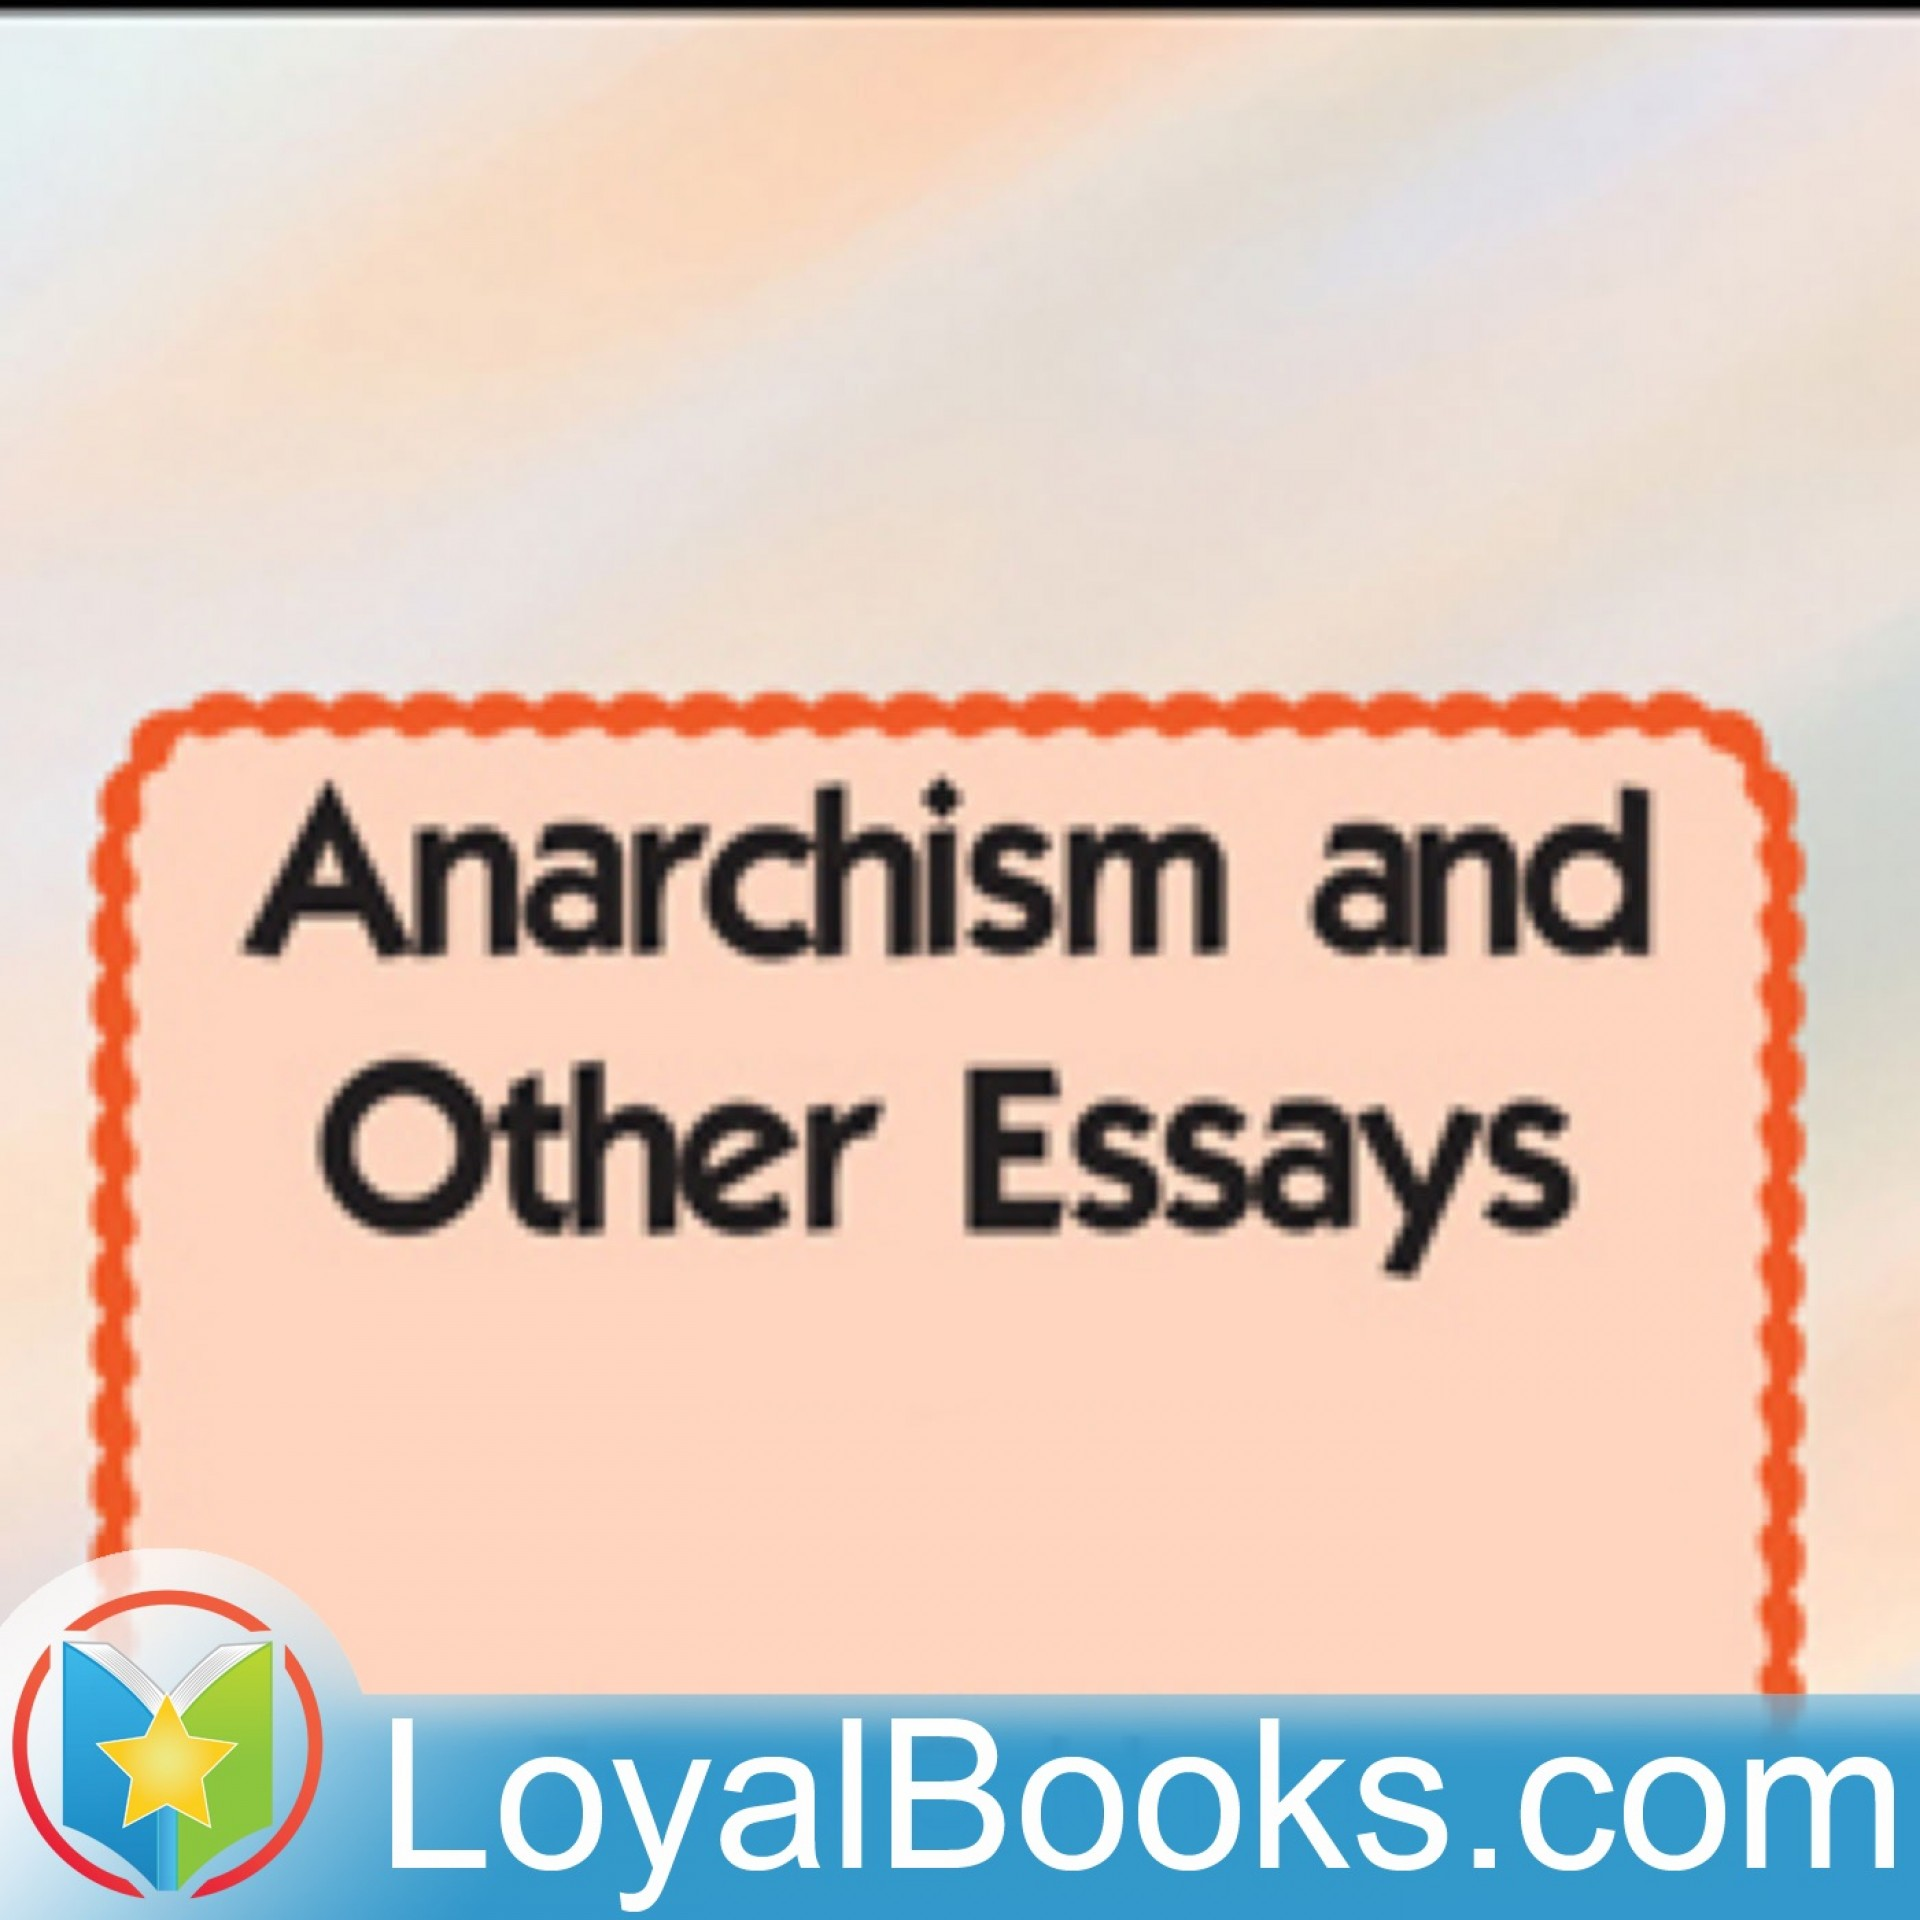 013 Anarchism And Other Essays Essay Example By Emma Incredible Goldman Summary Pdf 1920